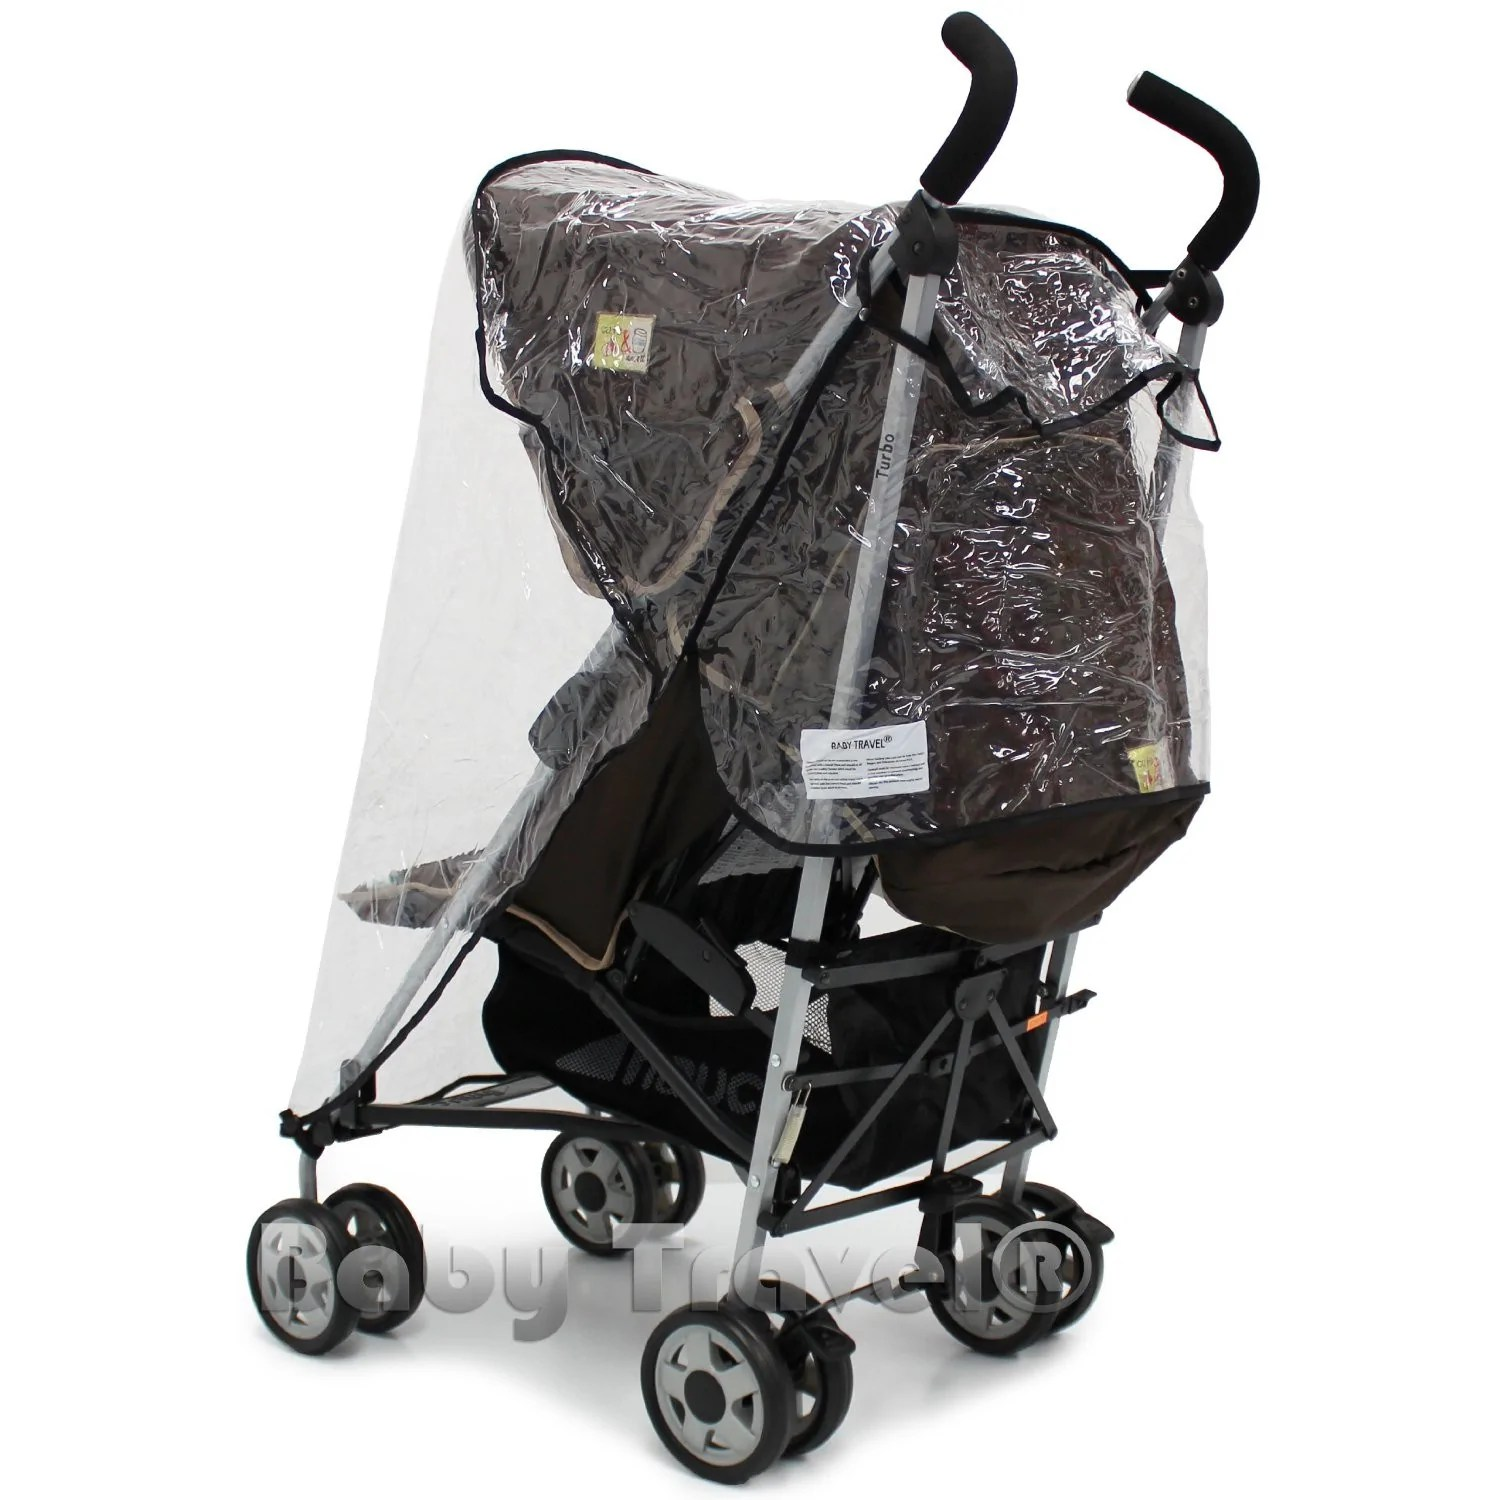 Hauck Buggy Jet Sale Now On Save Up To 50 Luxury Baby Prducts By Isafe